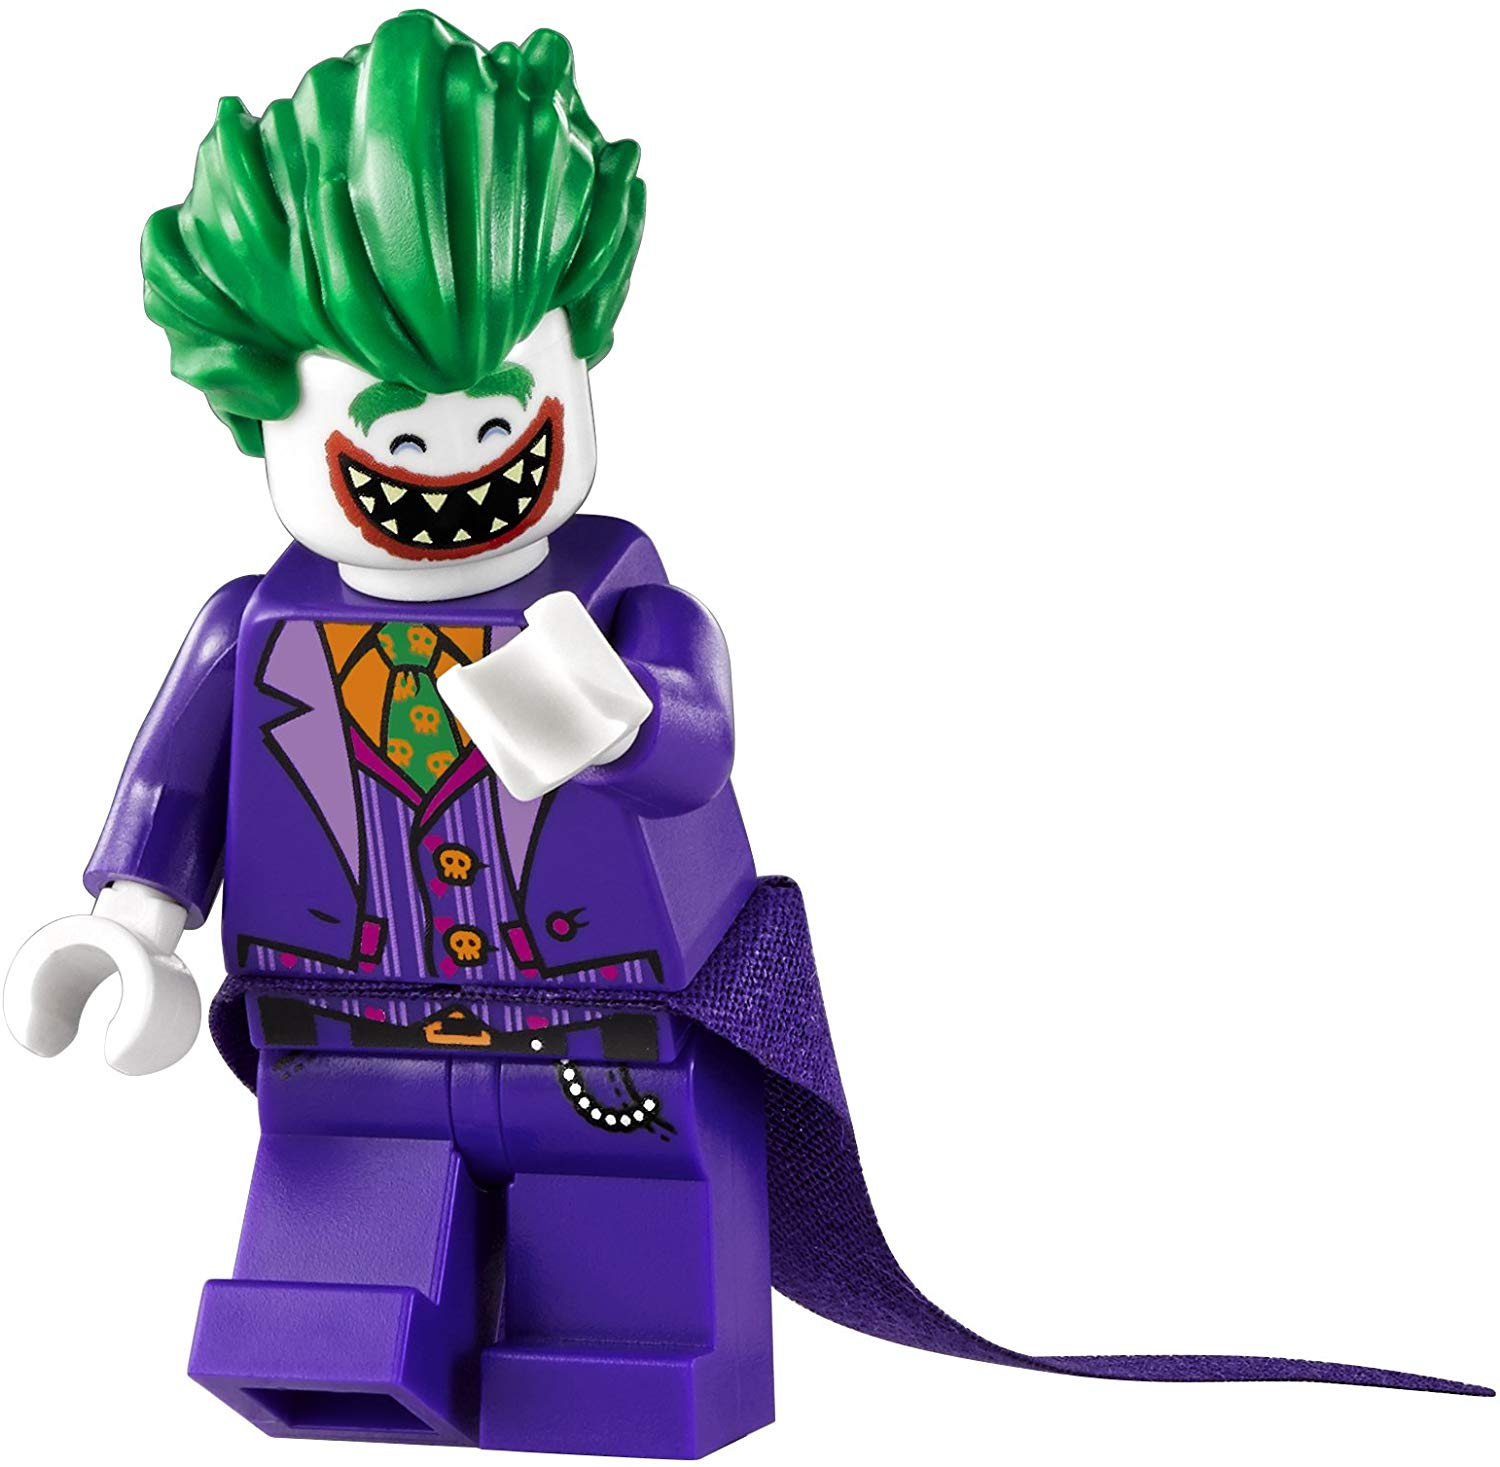 Lego Batman Movie The Joker Balloon Escape Grihaparivar Com